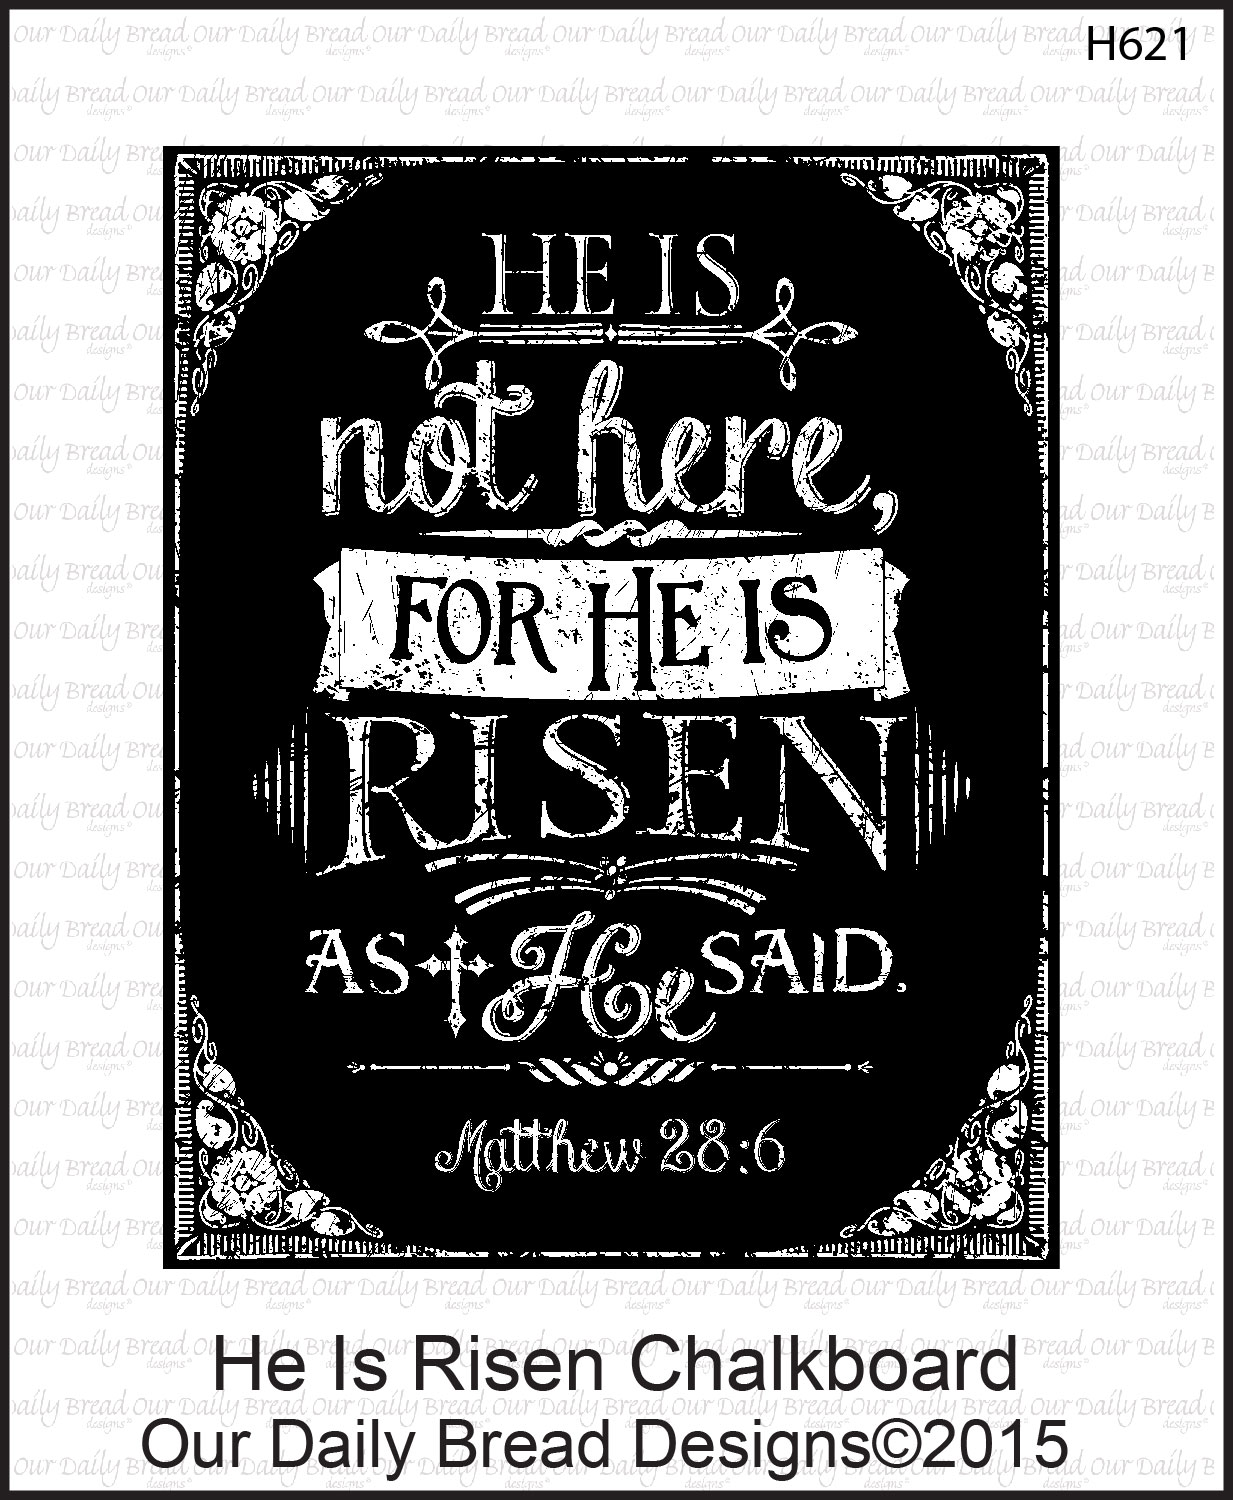 Stamps - Our Daily Bread Designs He Is Risen Chalkboard